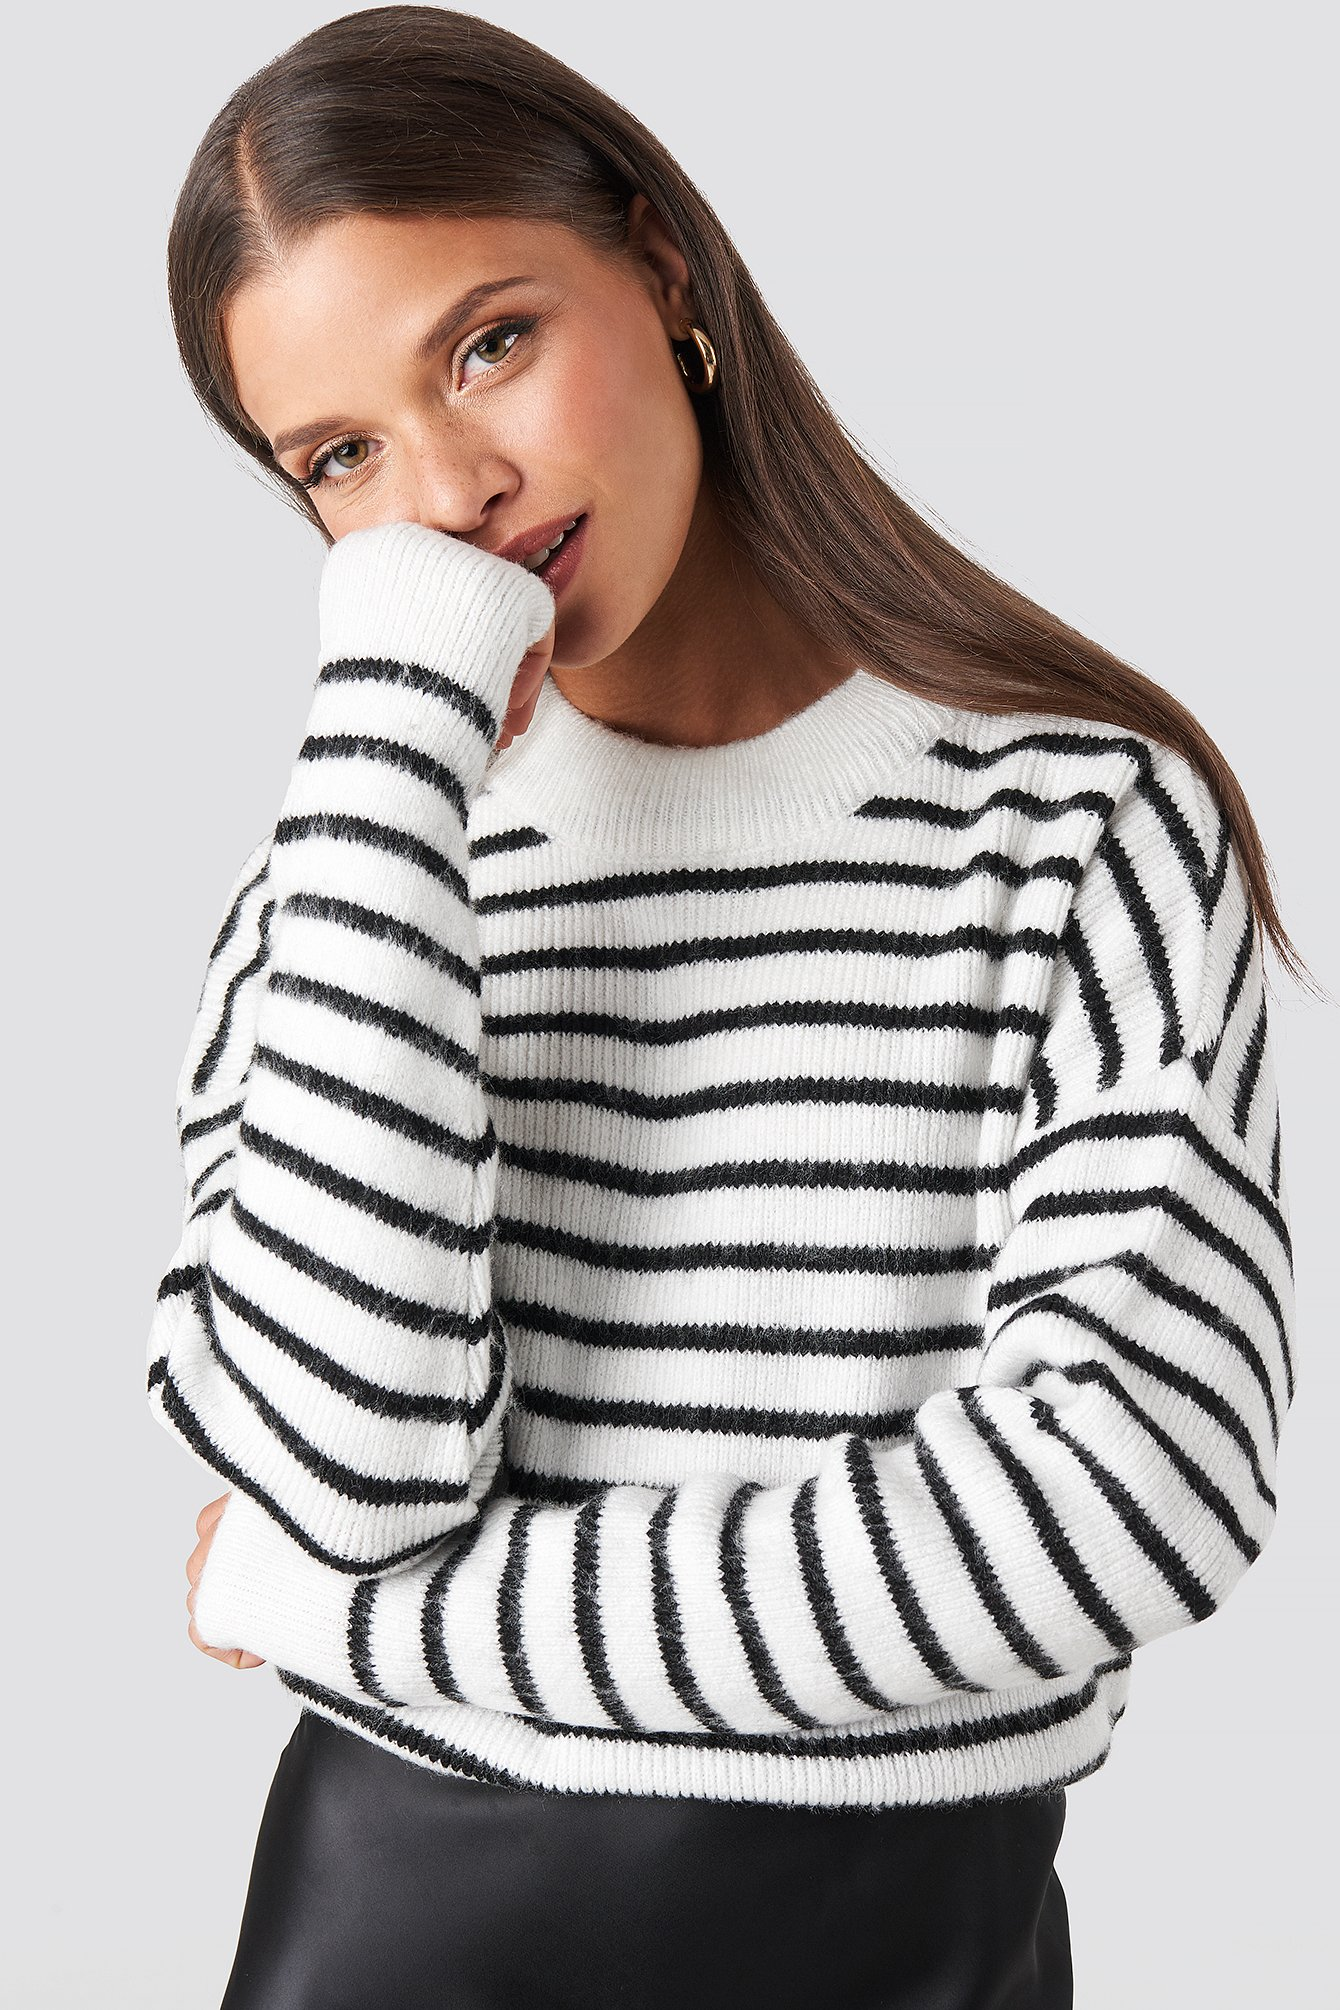 NA-KD Striped Round Neck Knitted Sweater - White